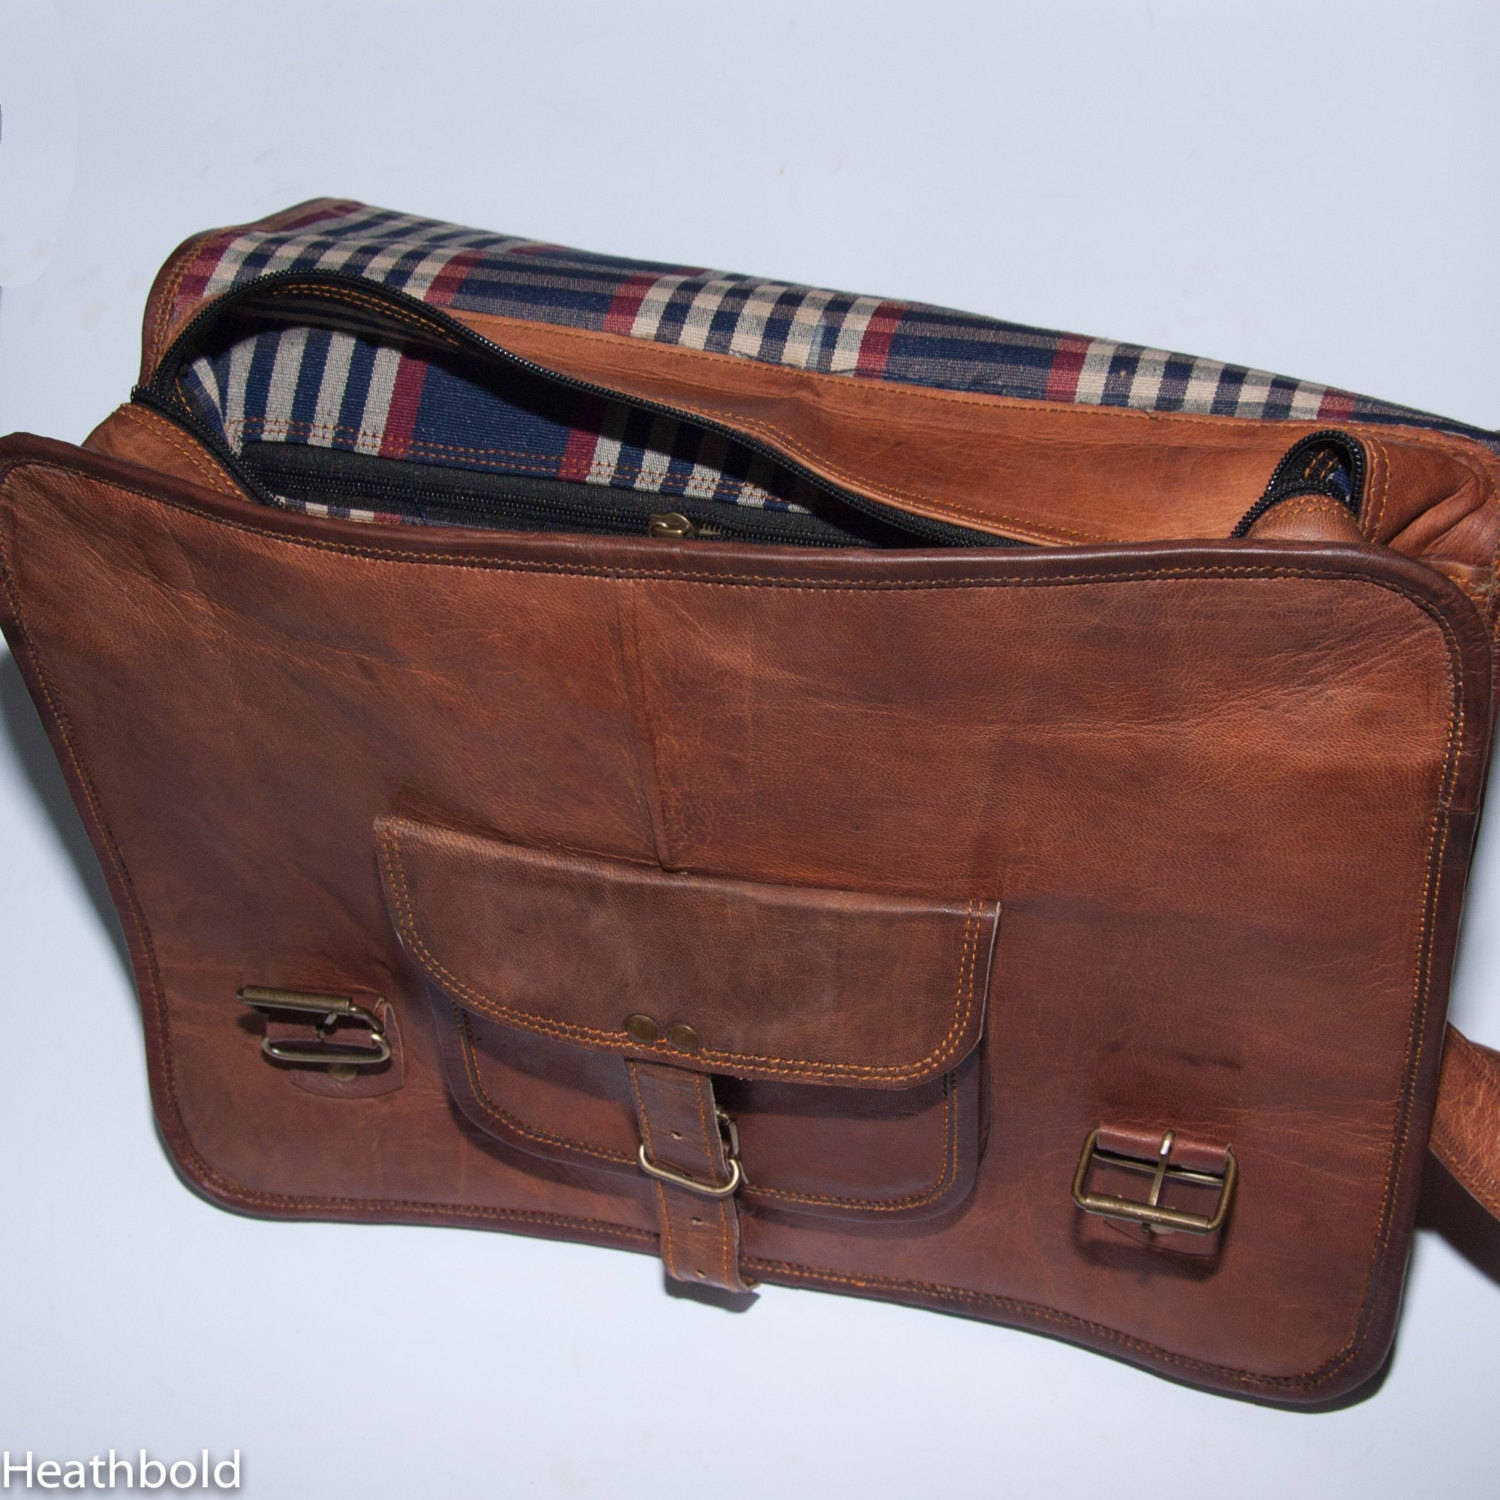 Heathbold Lancastrian. With top handle. Monogram or personal message options. Brown leather messenger laptop satchel bag. XL 15 laptop